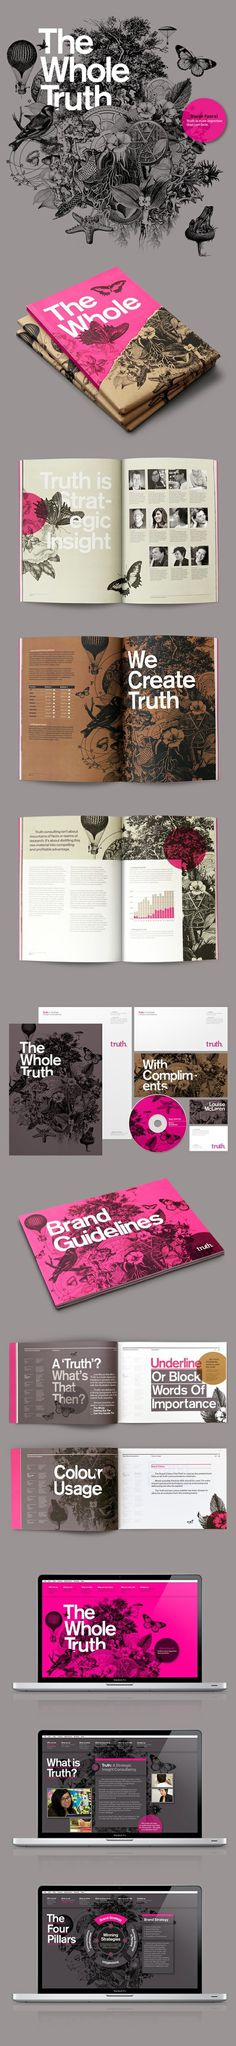 Truth Branding by Socio Design #workinspiration